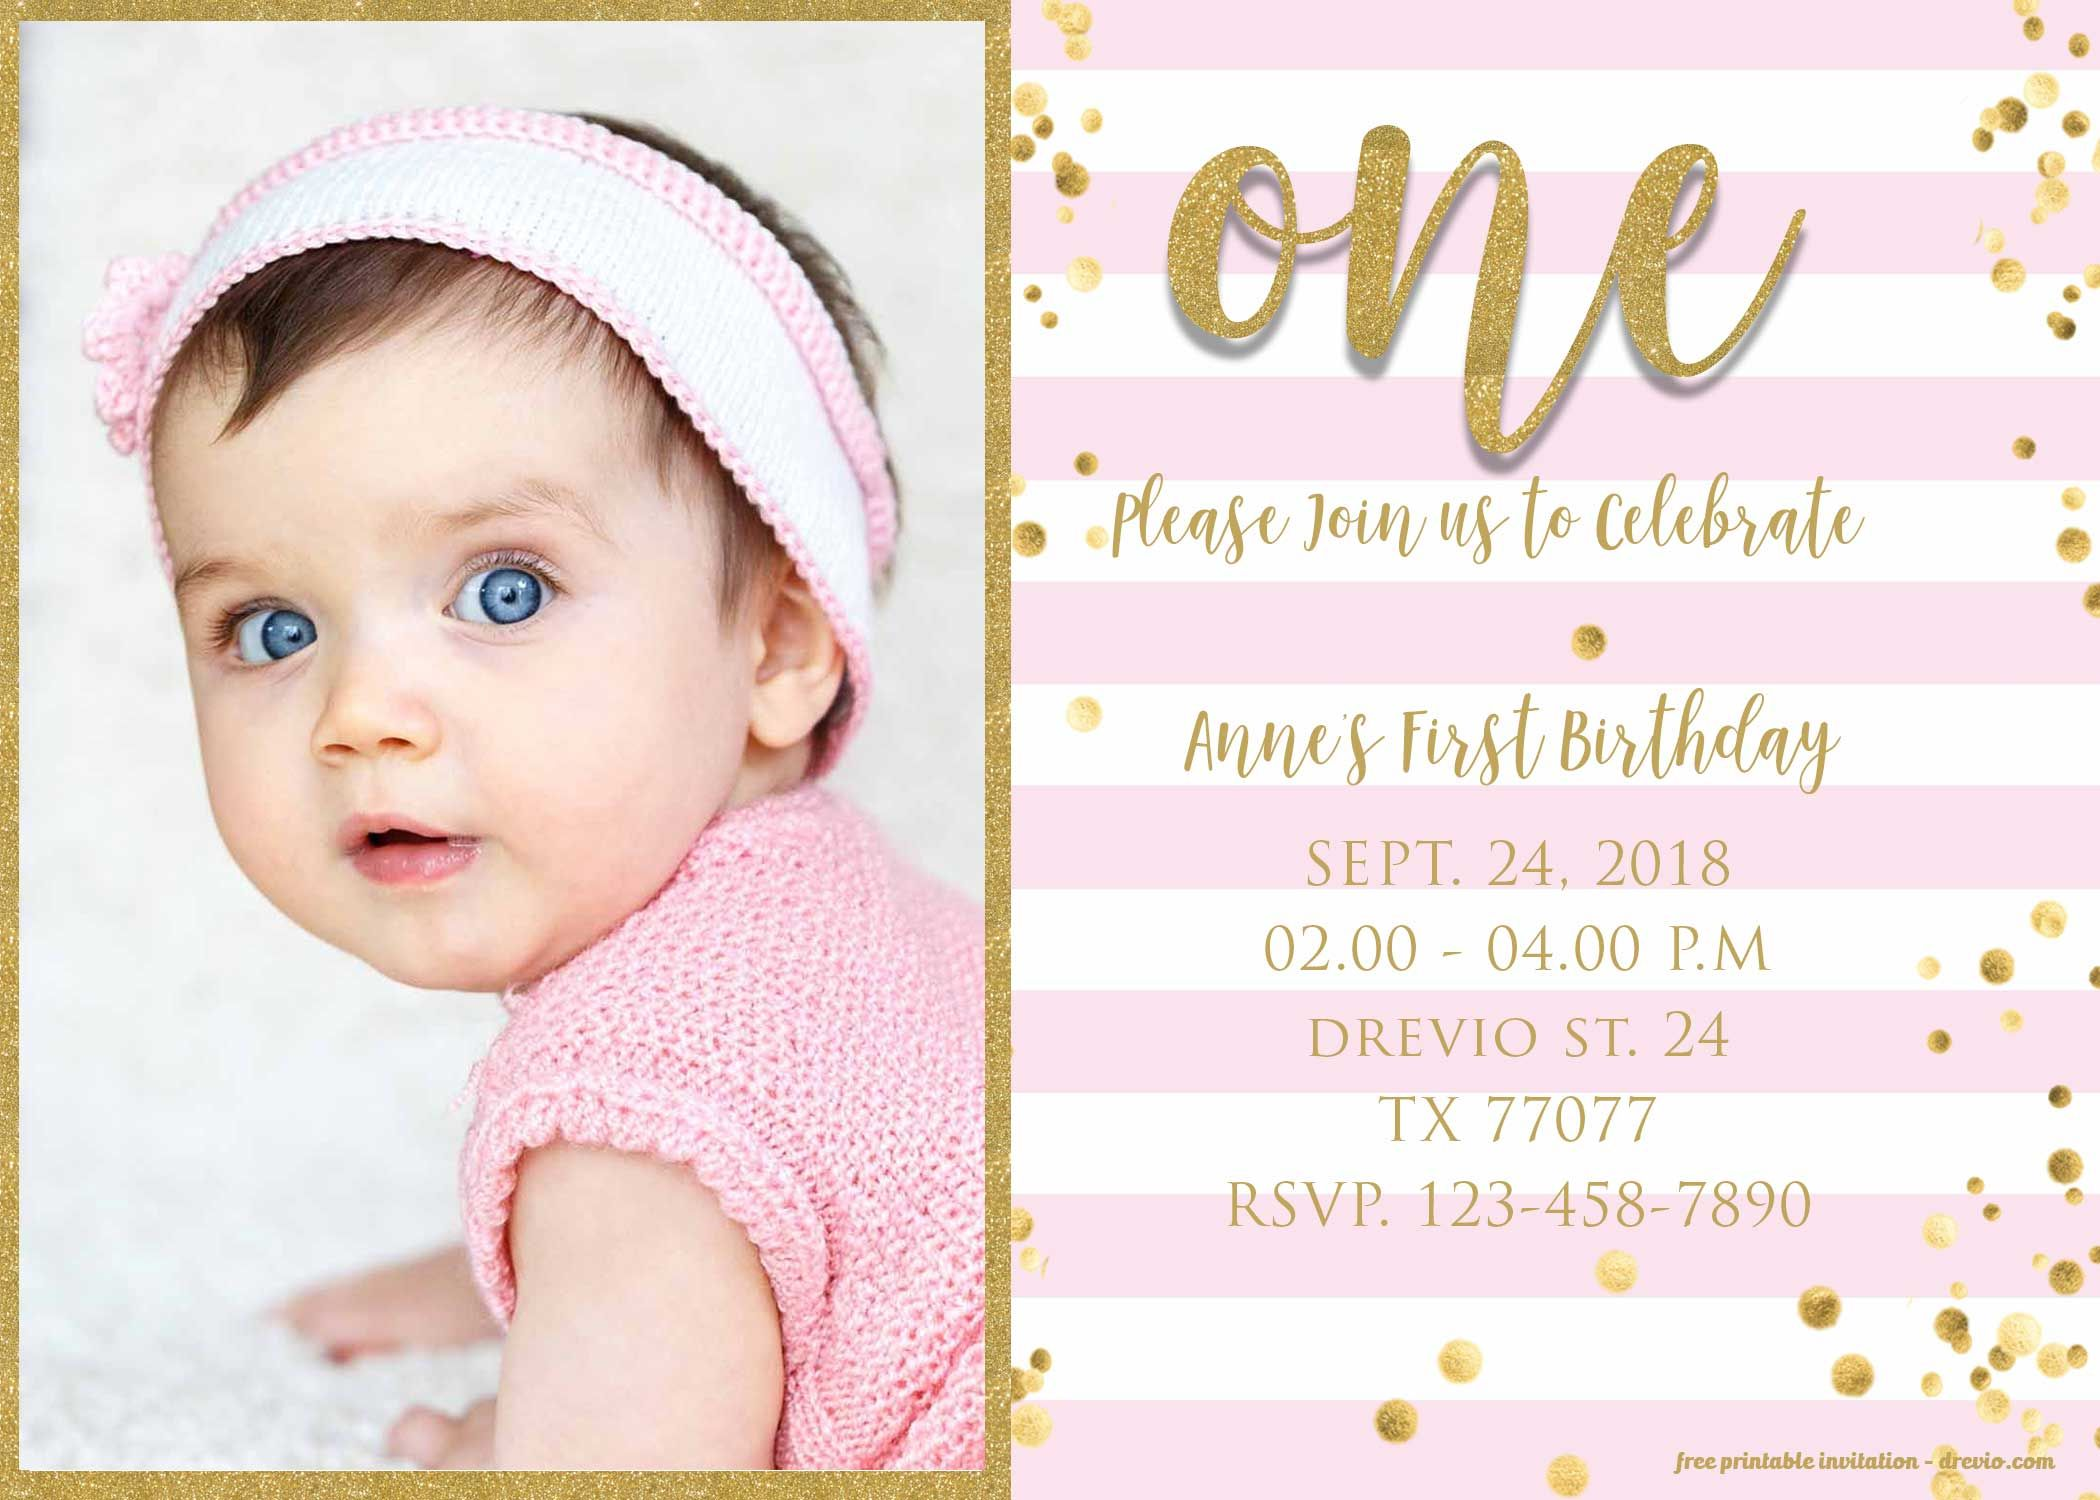 Free 1st Birthday Invitation Pink And Gold Glitter Template 1st Birthday Invitations Girl Birthday Invitations Girl Pink Invitations